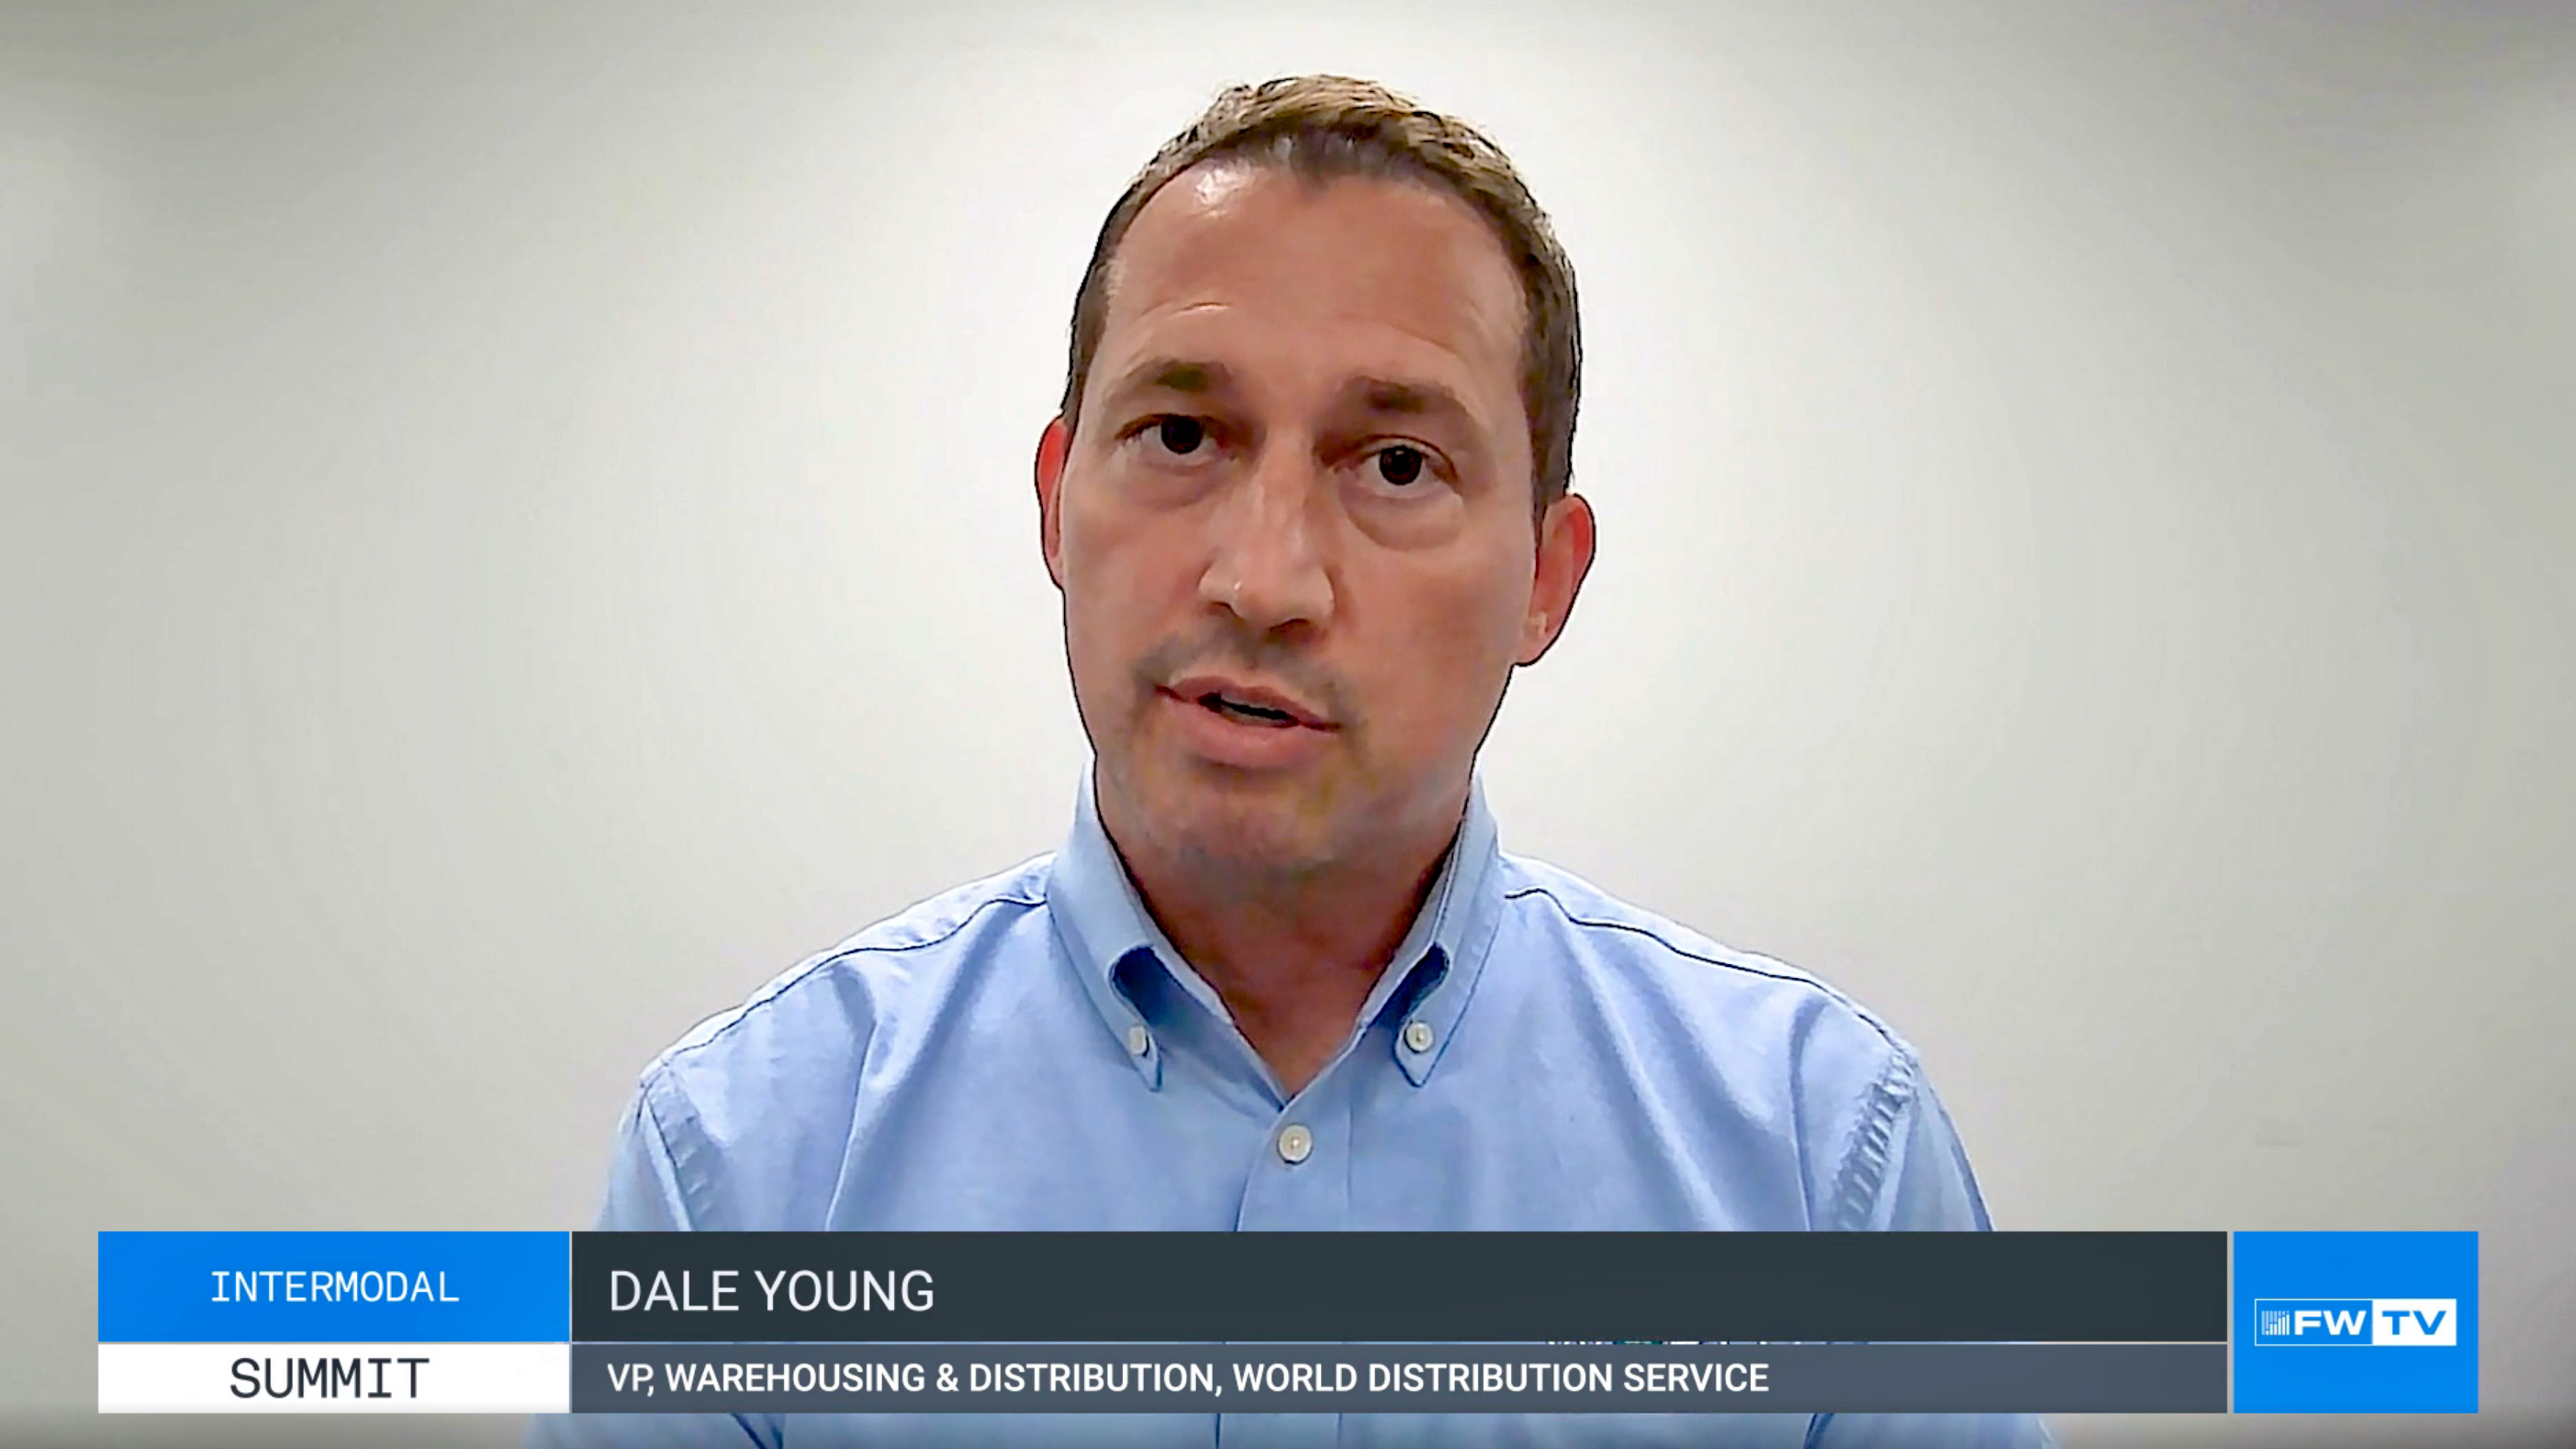 A video capture of a Dale Young of World Distribution Services discusses warehousing during FreightWaves' Intermodal Summit.